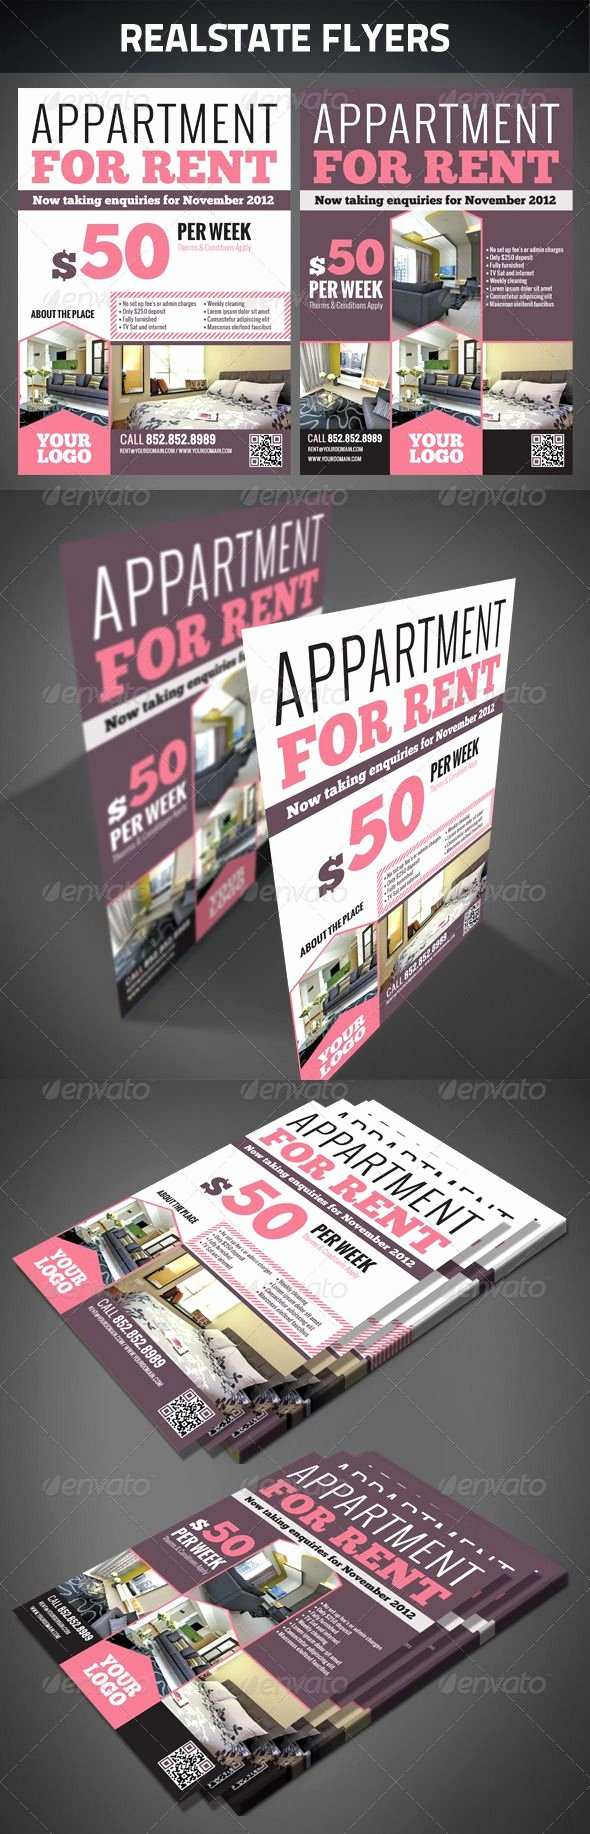 Apartment for Rent Flyer Template New Realestate Flyers Graphicriver Realestate Flyers Zip File